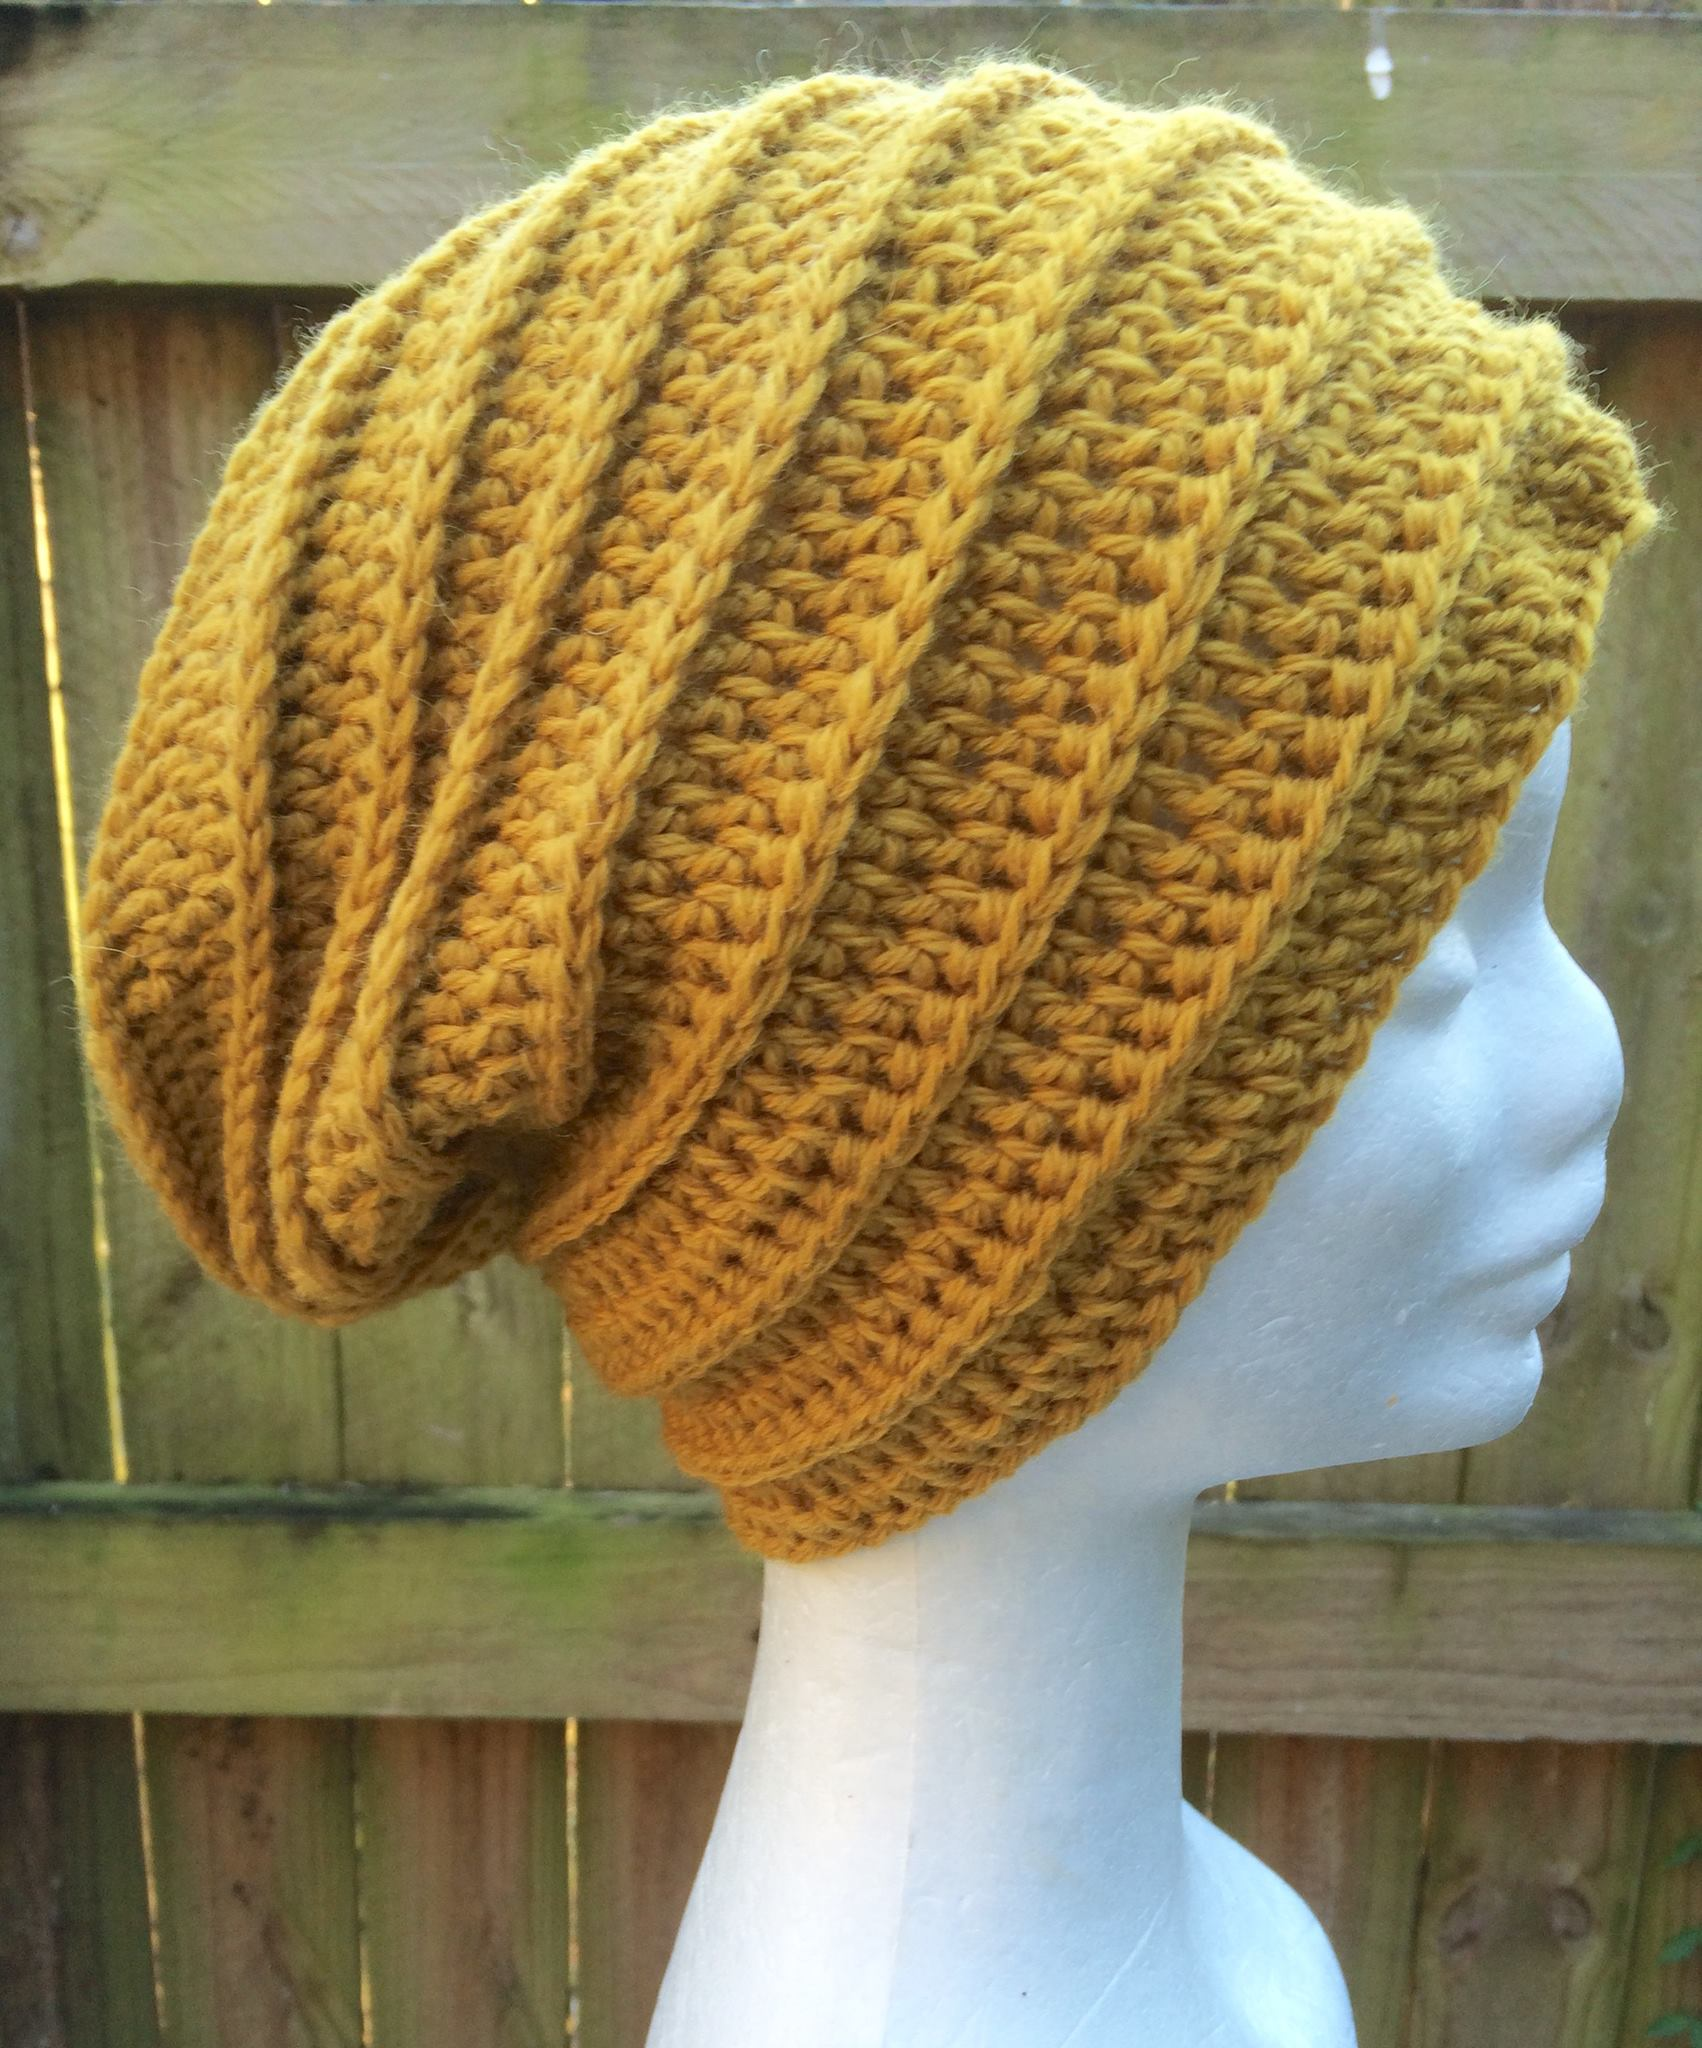 9e2a70cc2 Crocheted Slouchy beanie in mustard yellow with a textured ribbed effect.